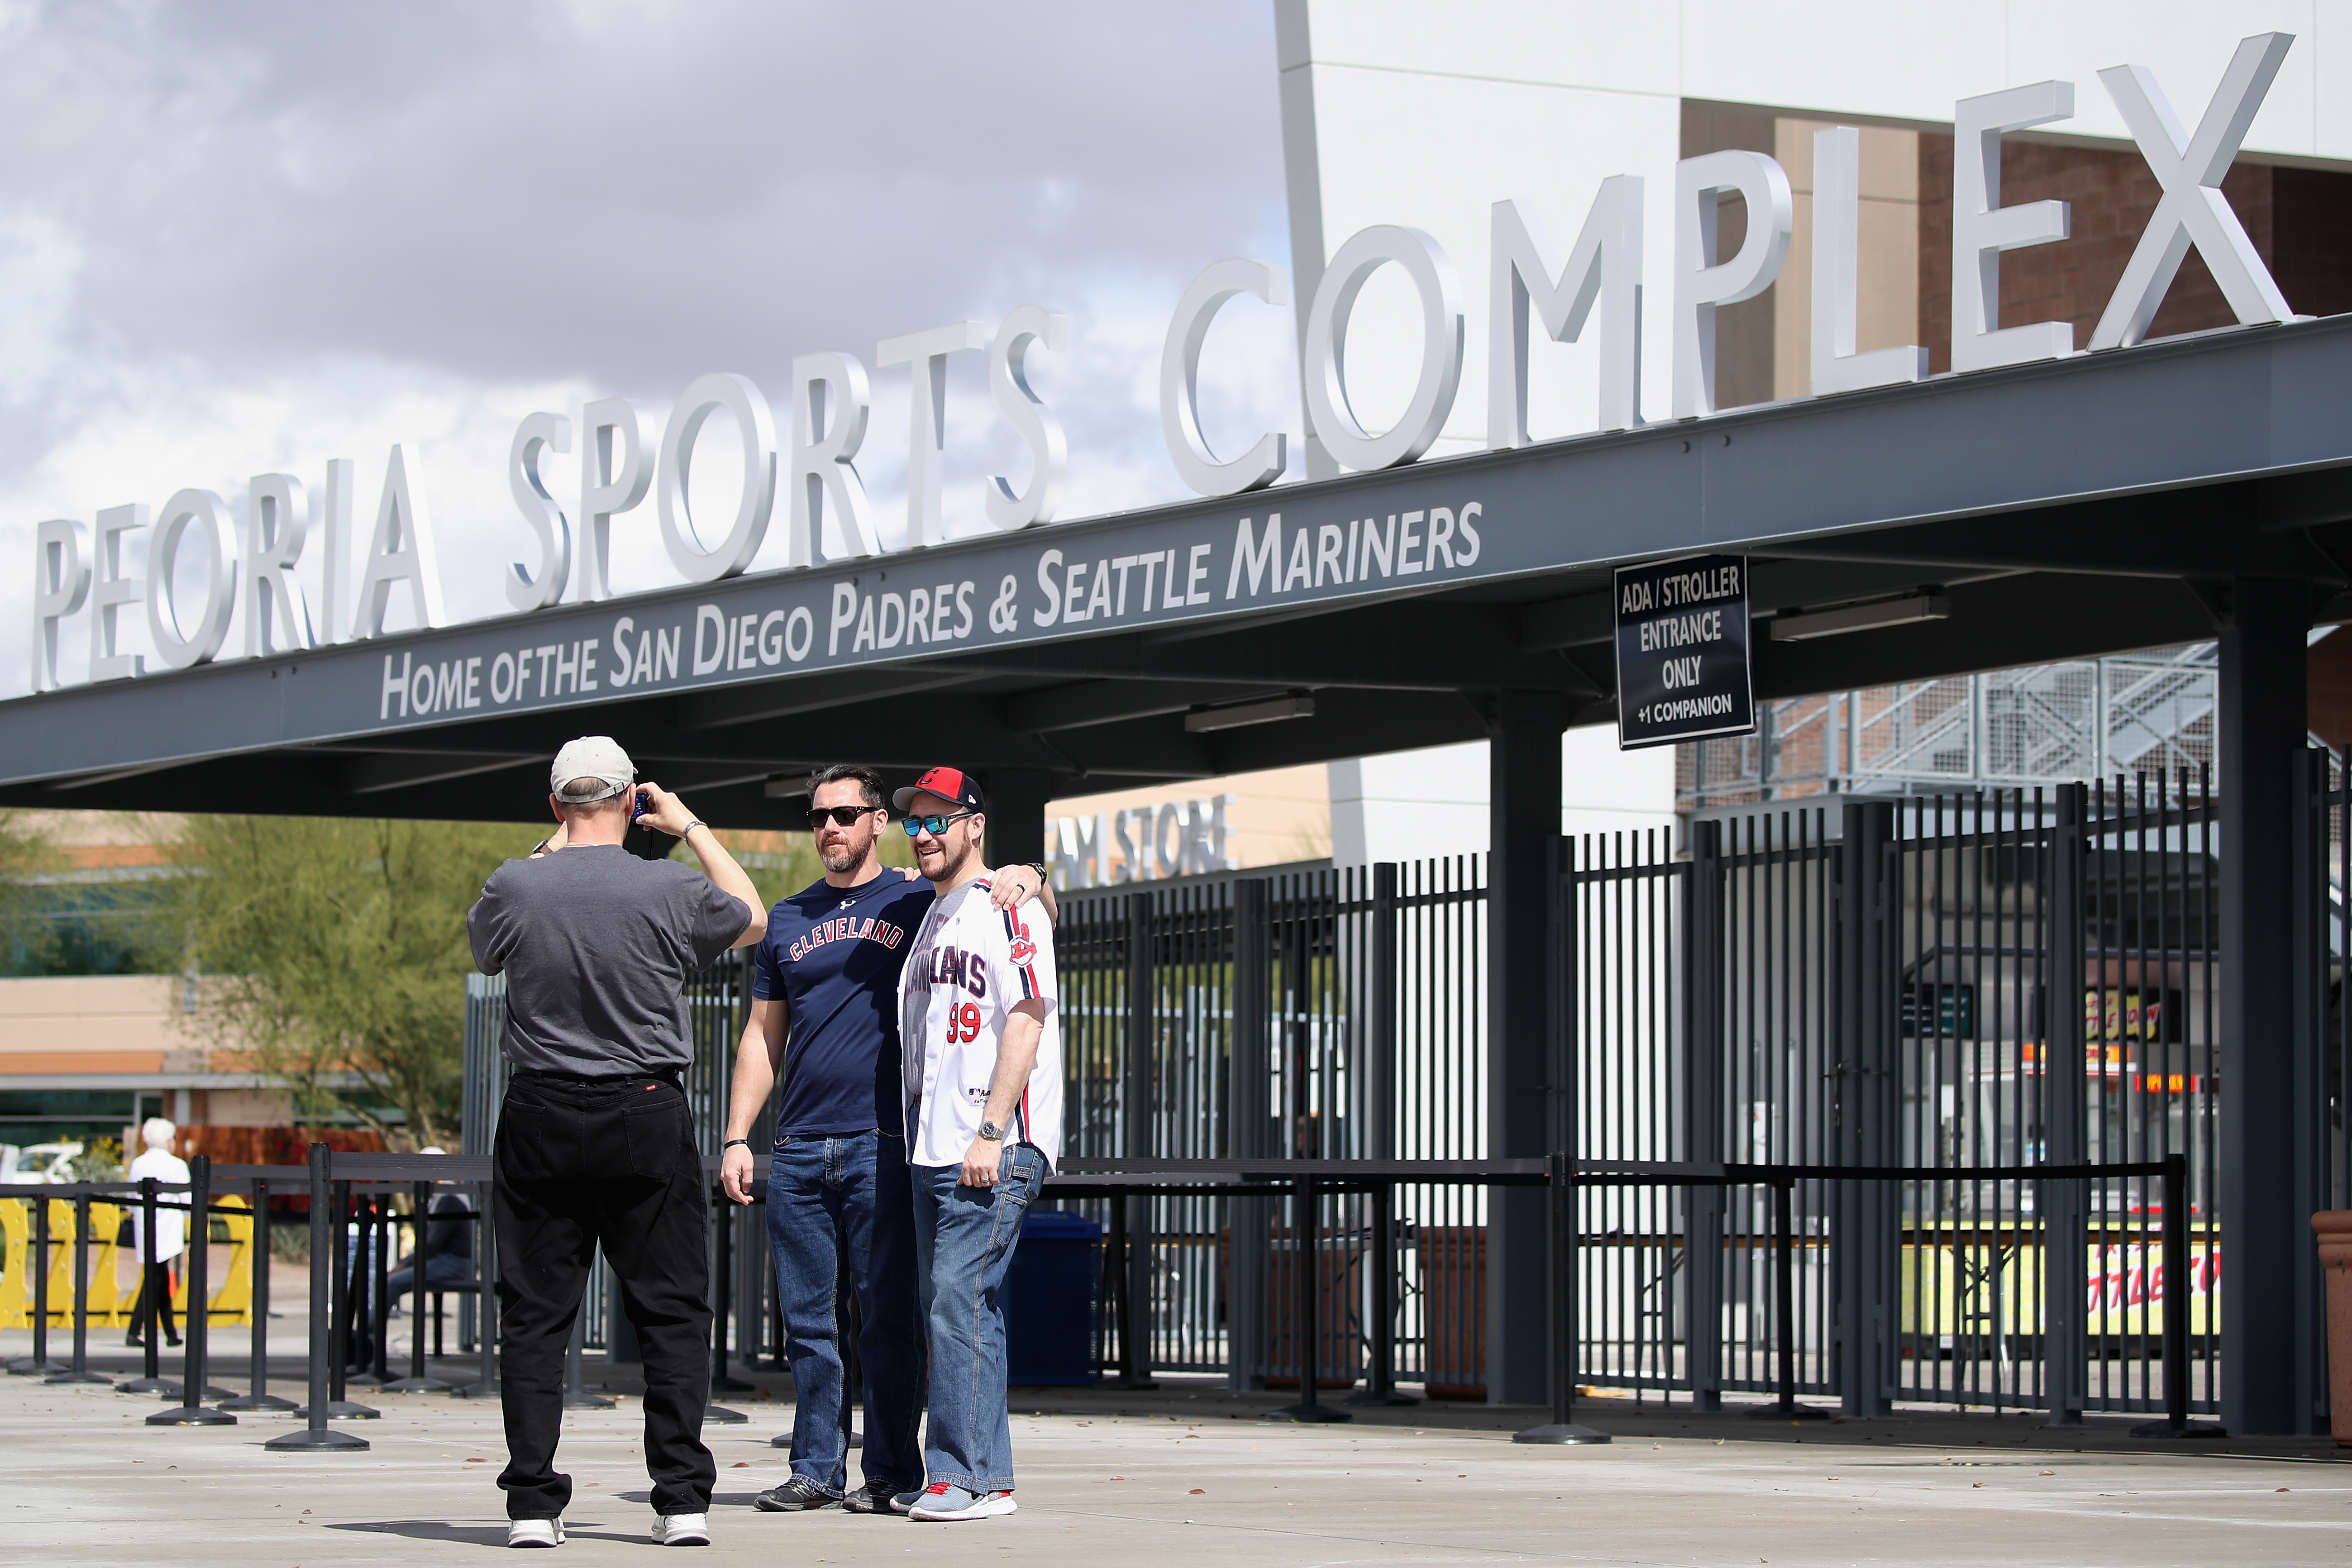 Fans take picture at empty Goodyear stadium